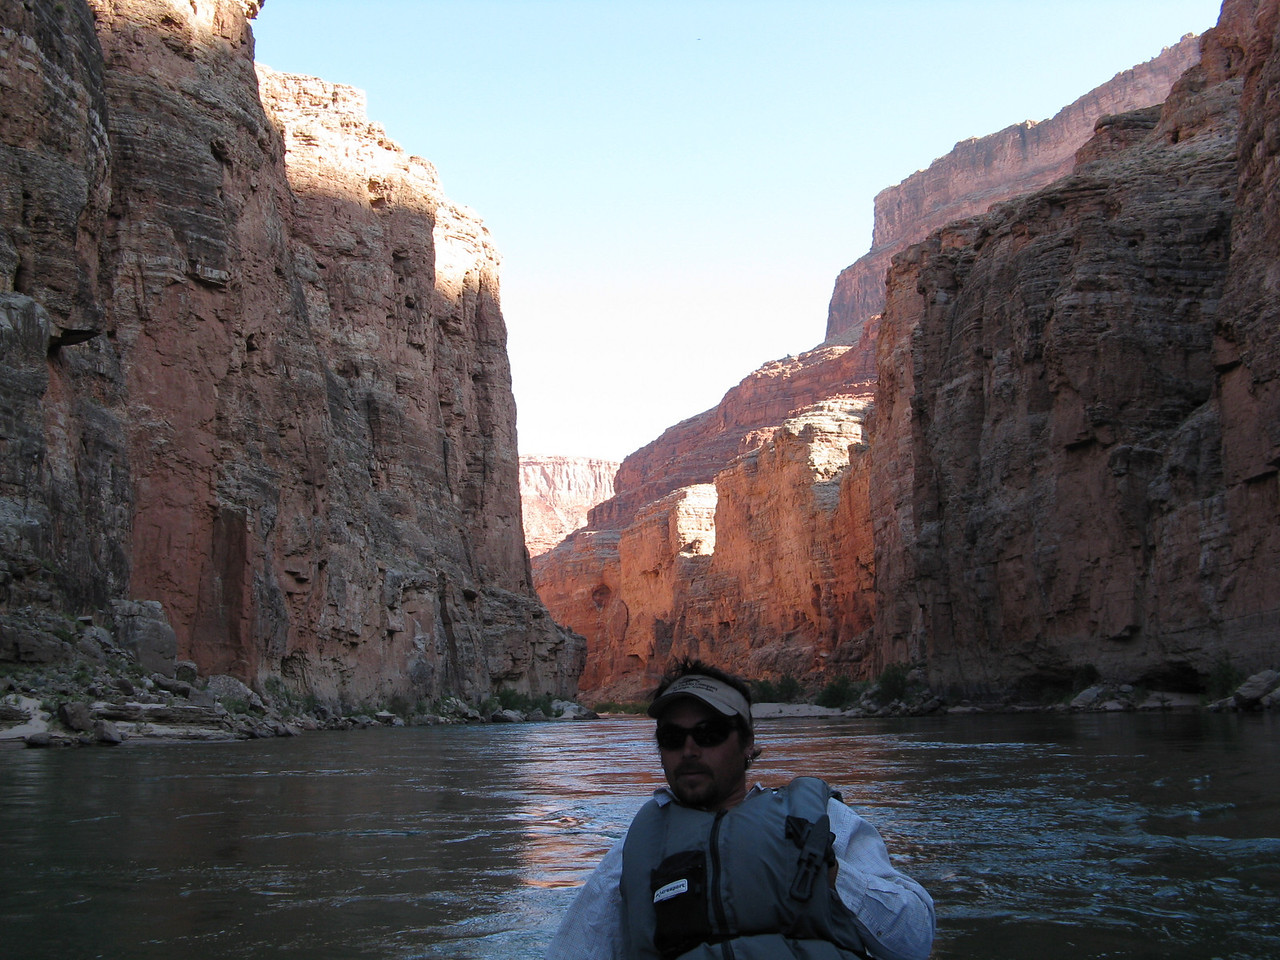 An upstream view with Brandon at the tiller on the outboard.